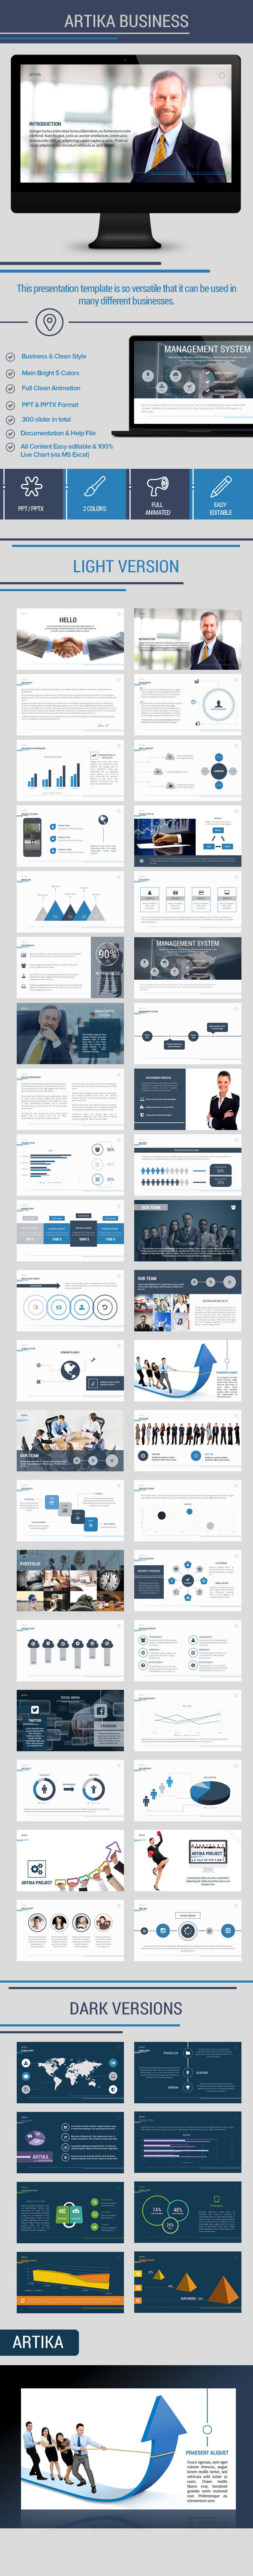 GraphicRiver Artika Business 8759611